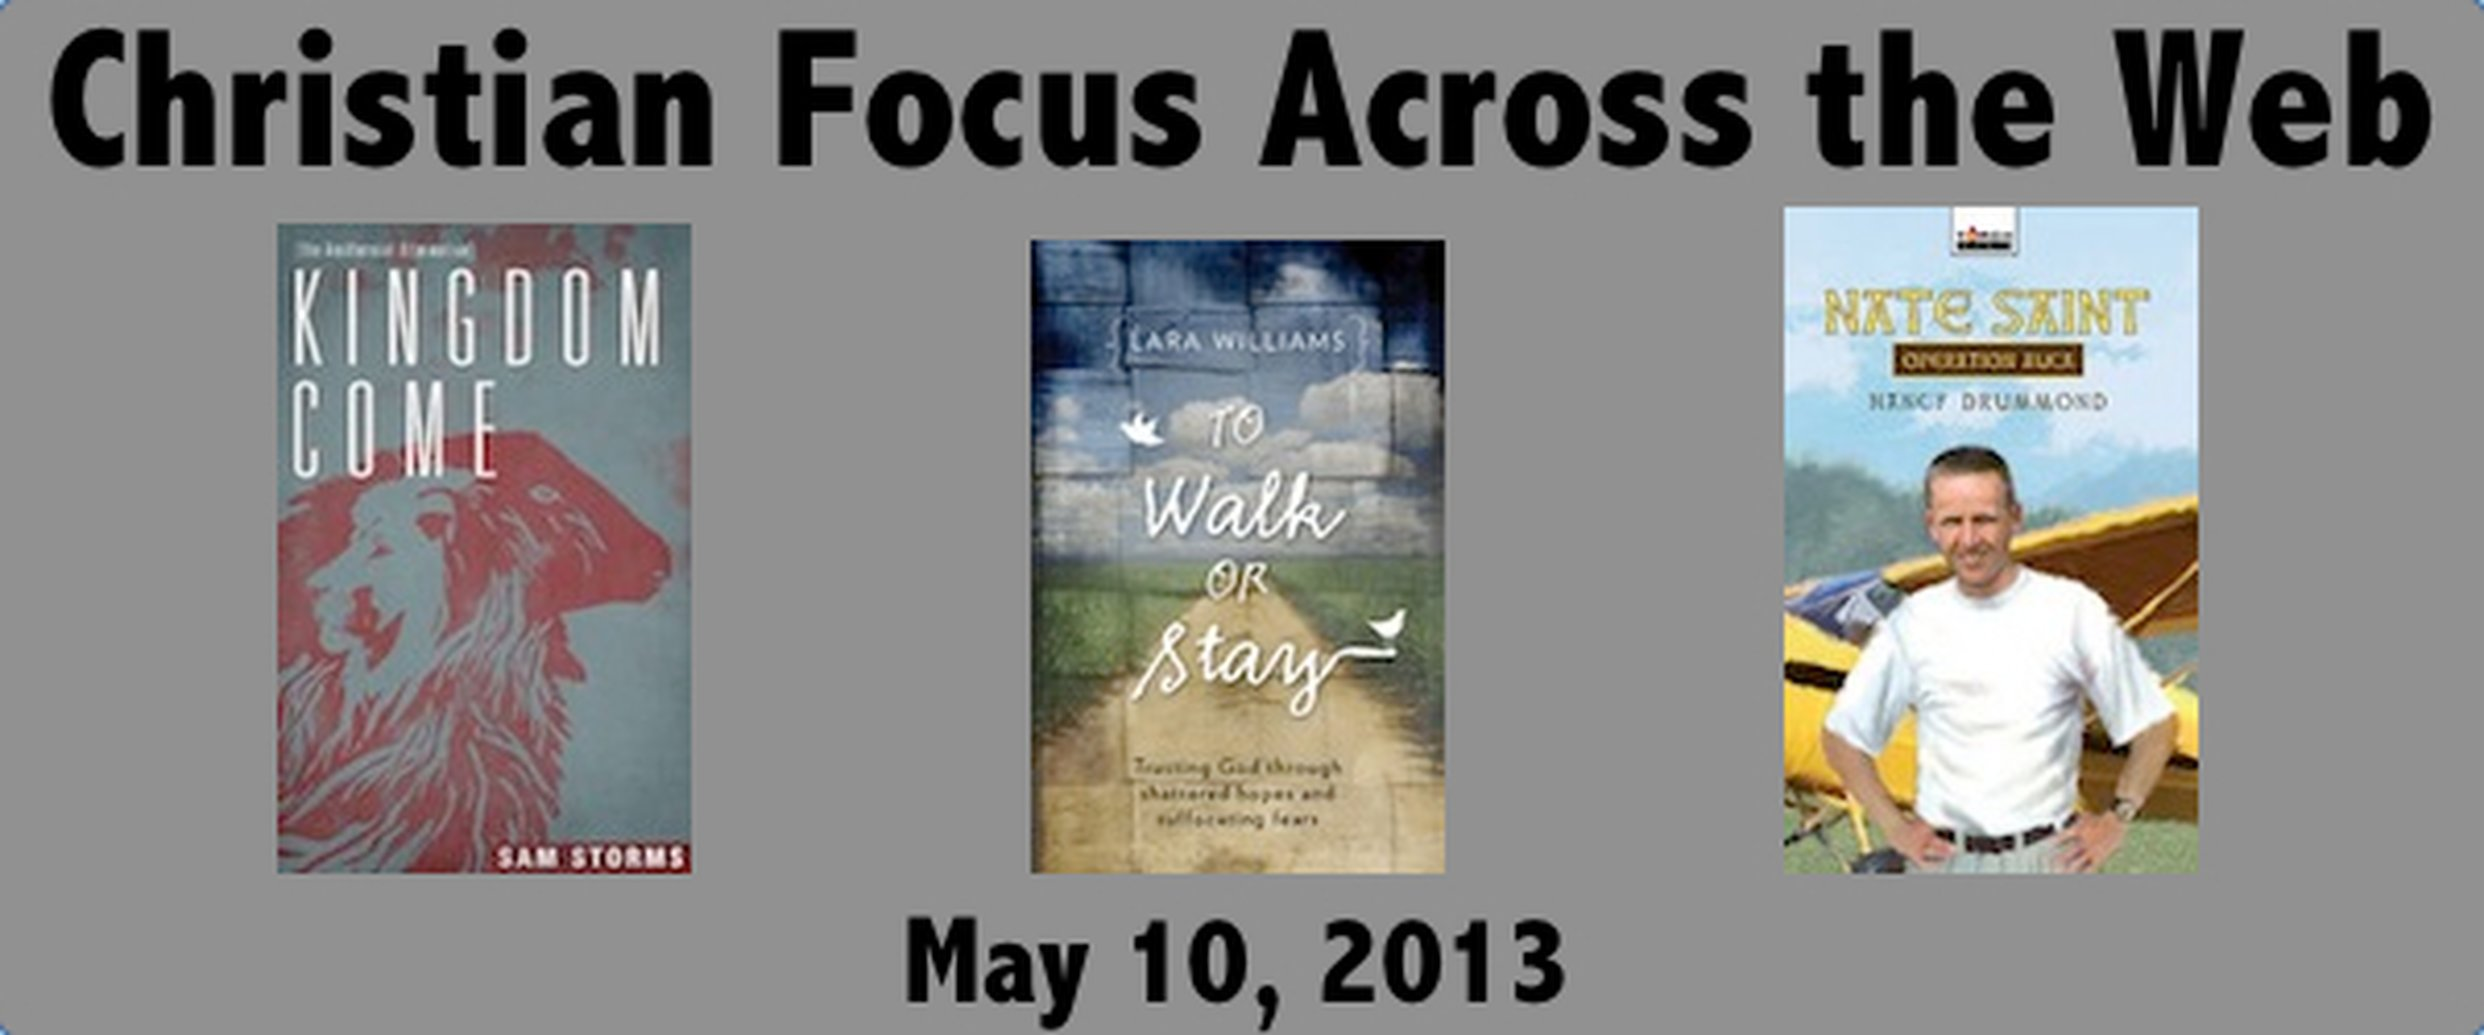 Christian Focus Across the Web - May 17, 2013